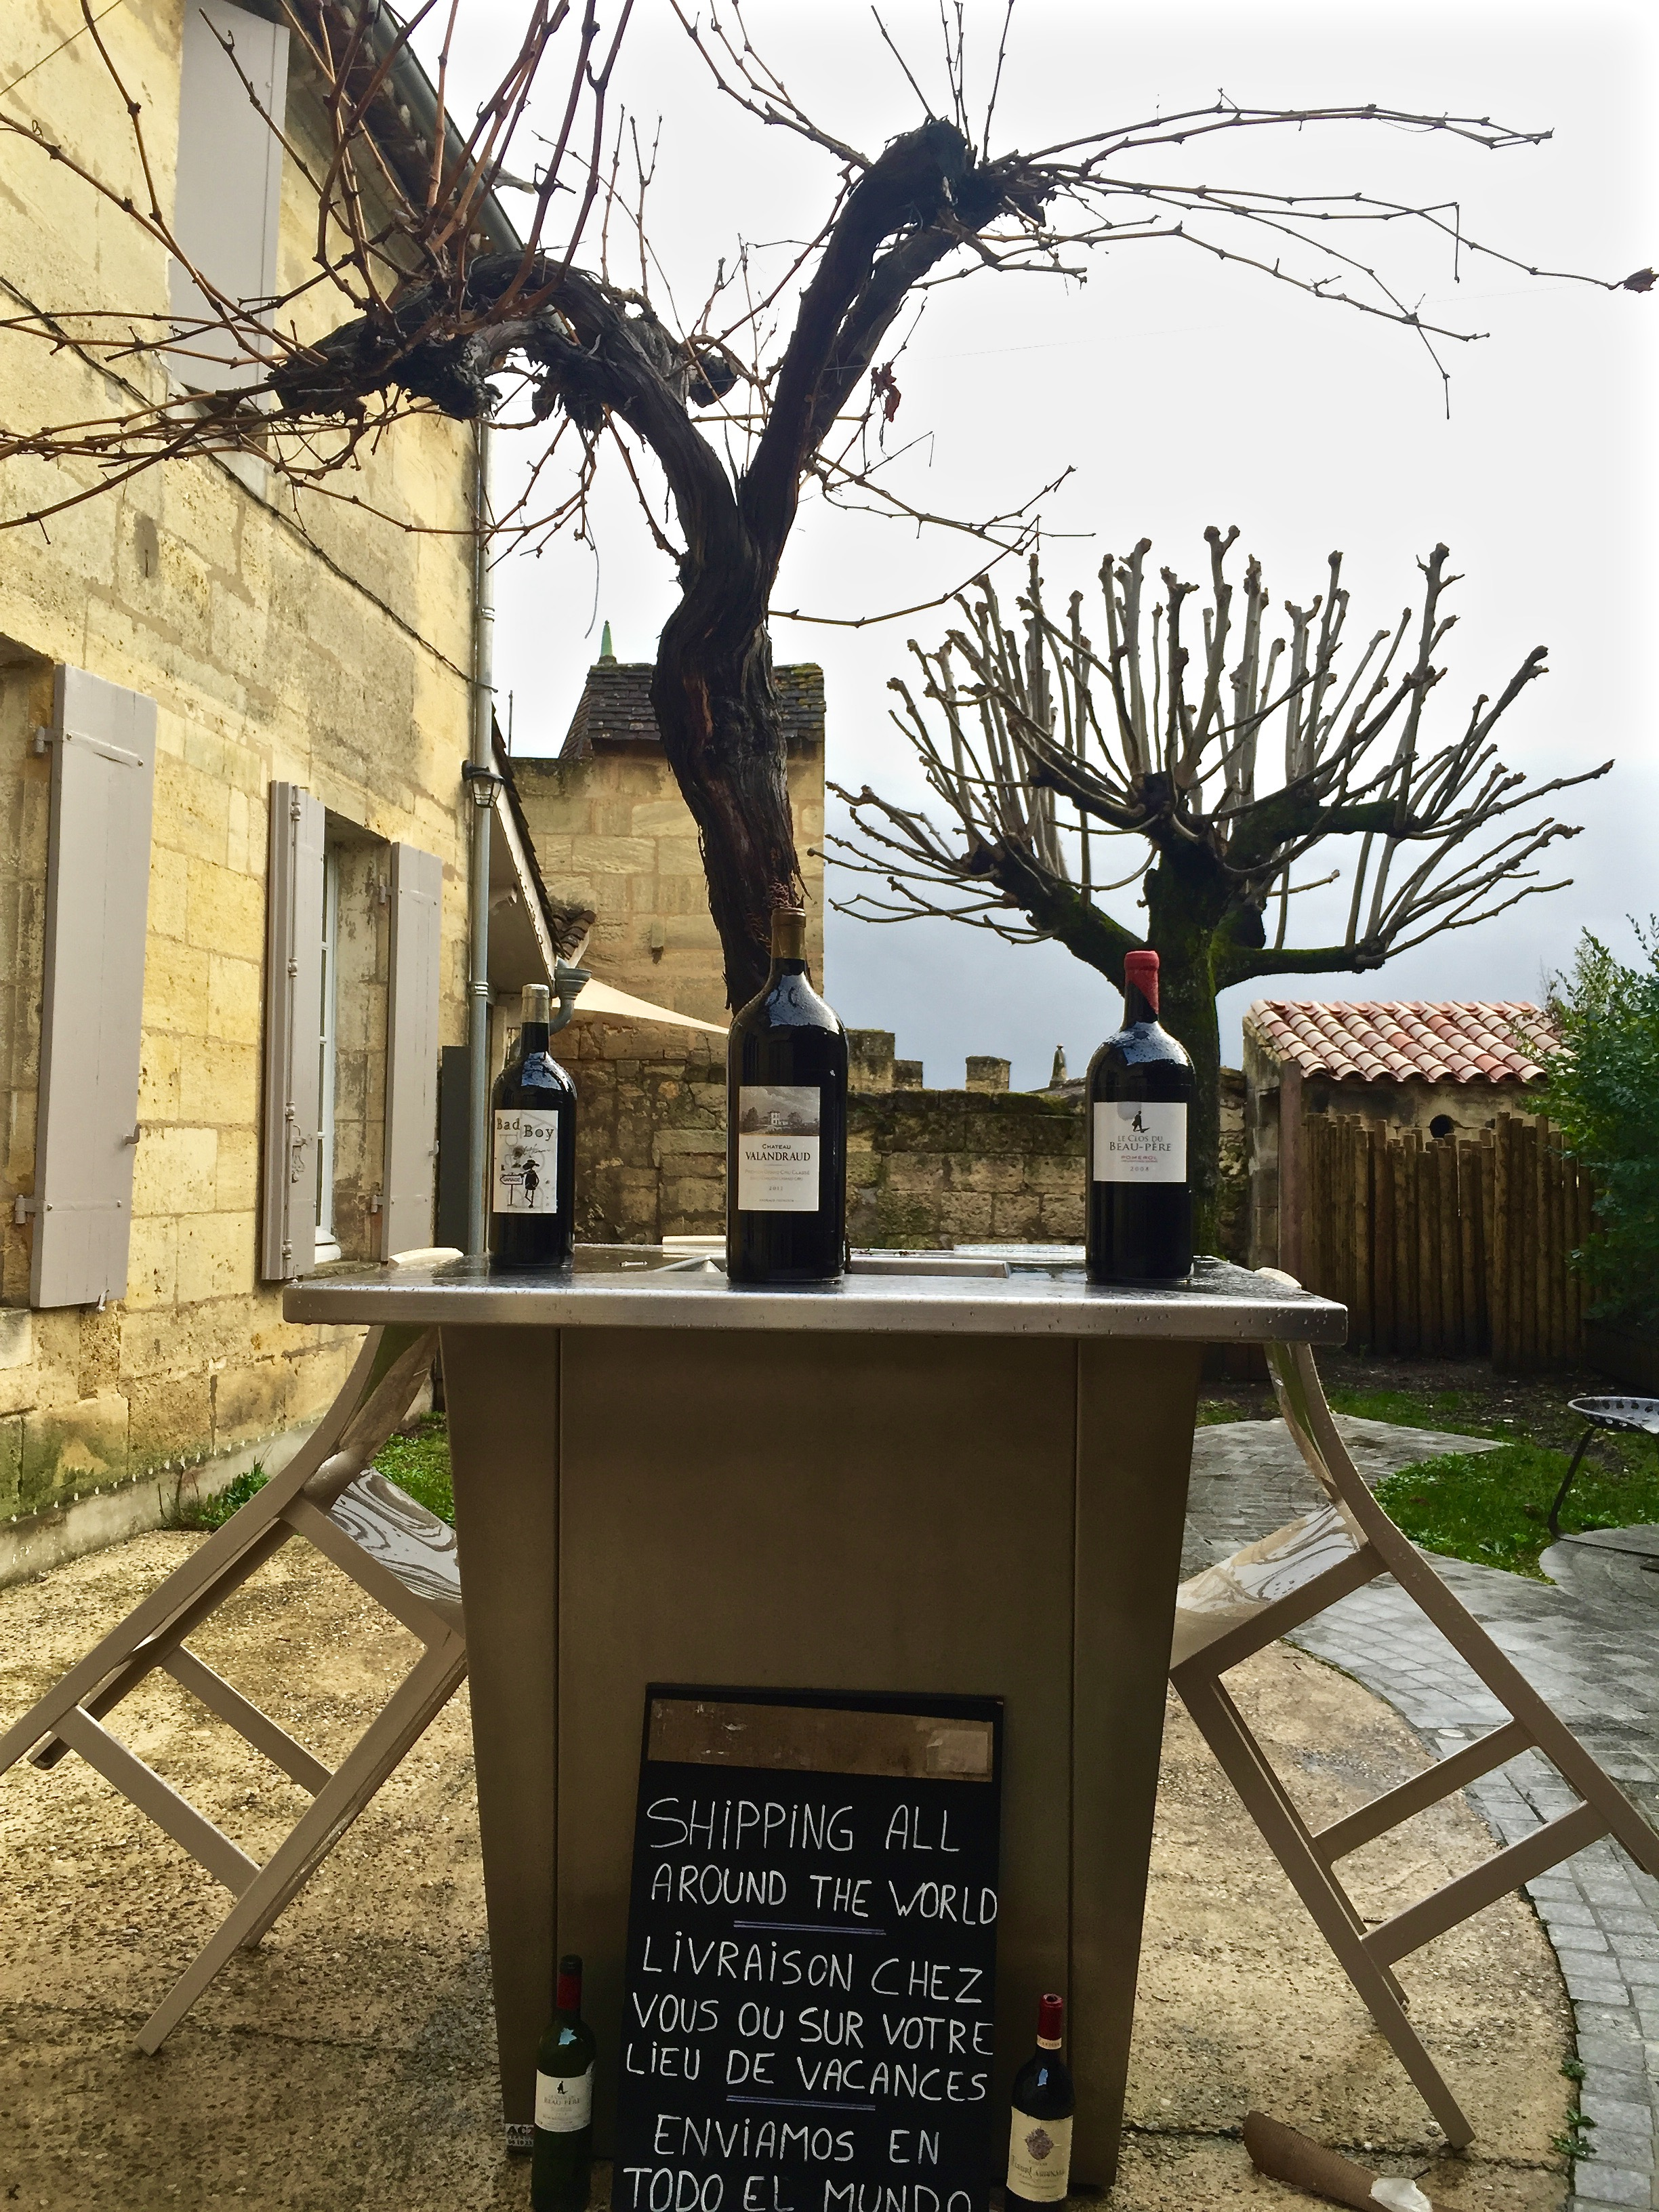 One of the many wine shops in St. Emilion.